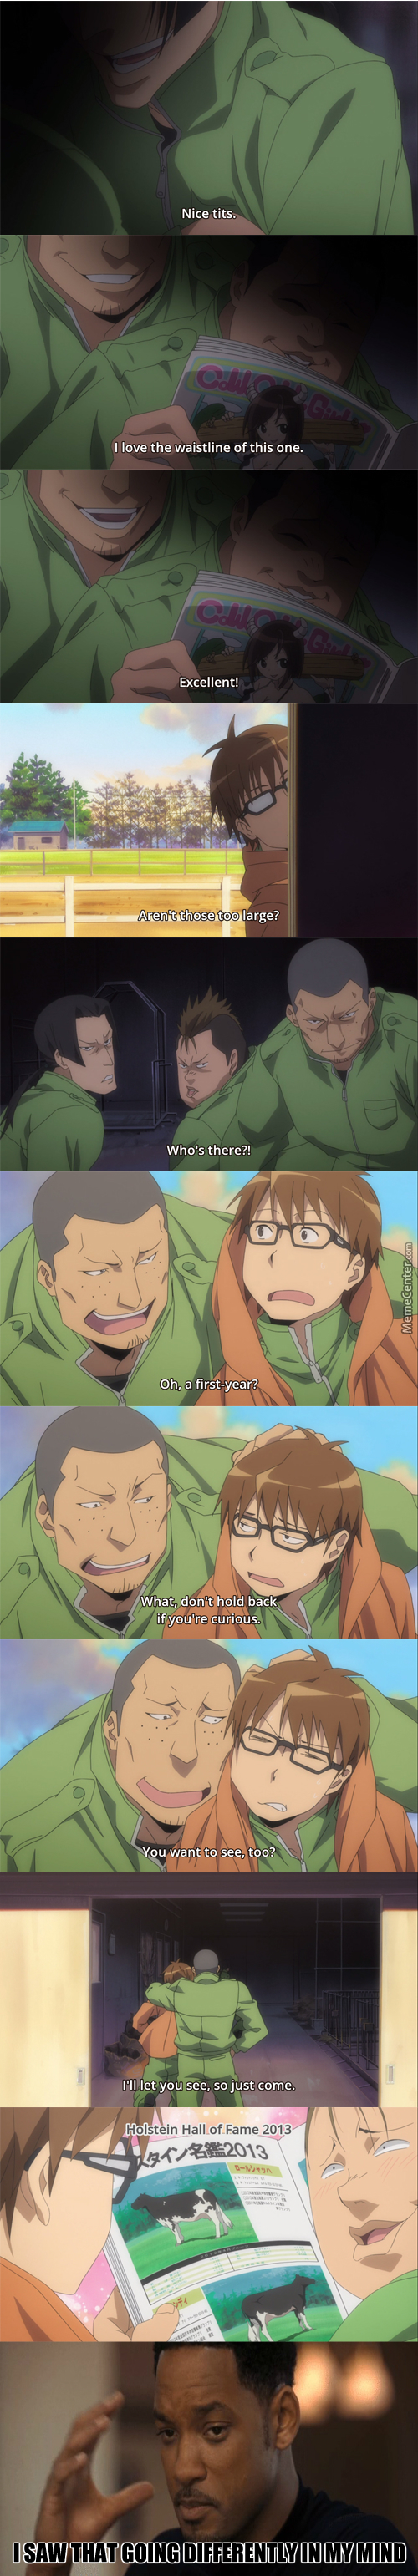 Oh, So That's What You Three Been Talking About (Anime: Silver Spoon)